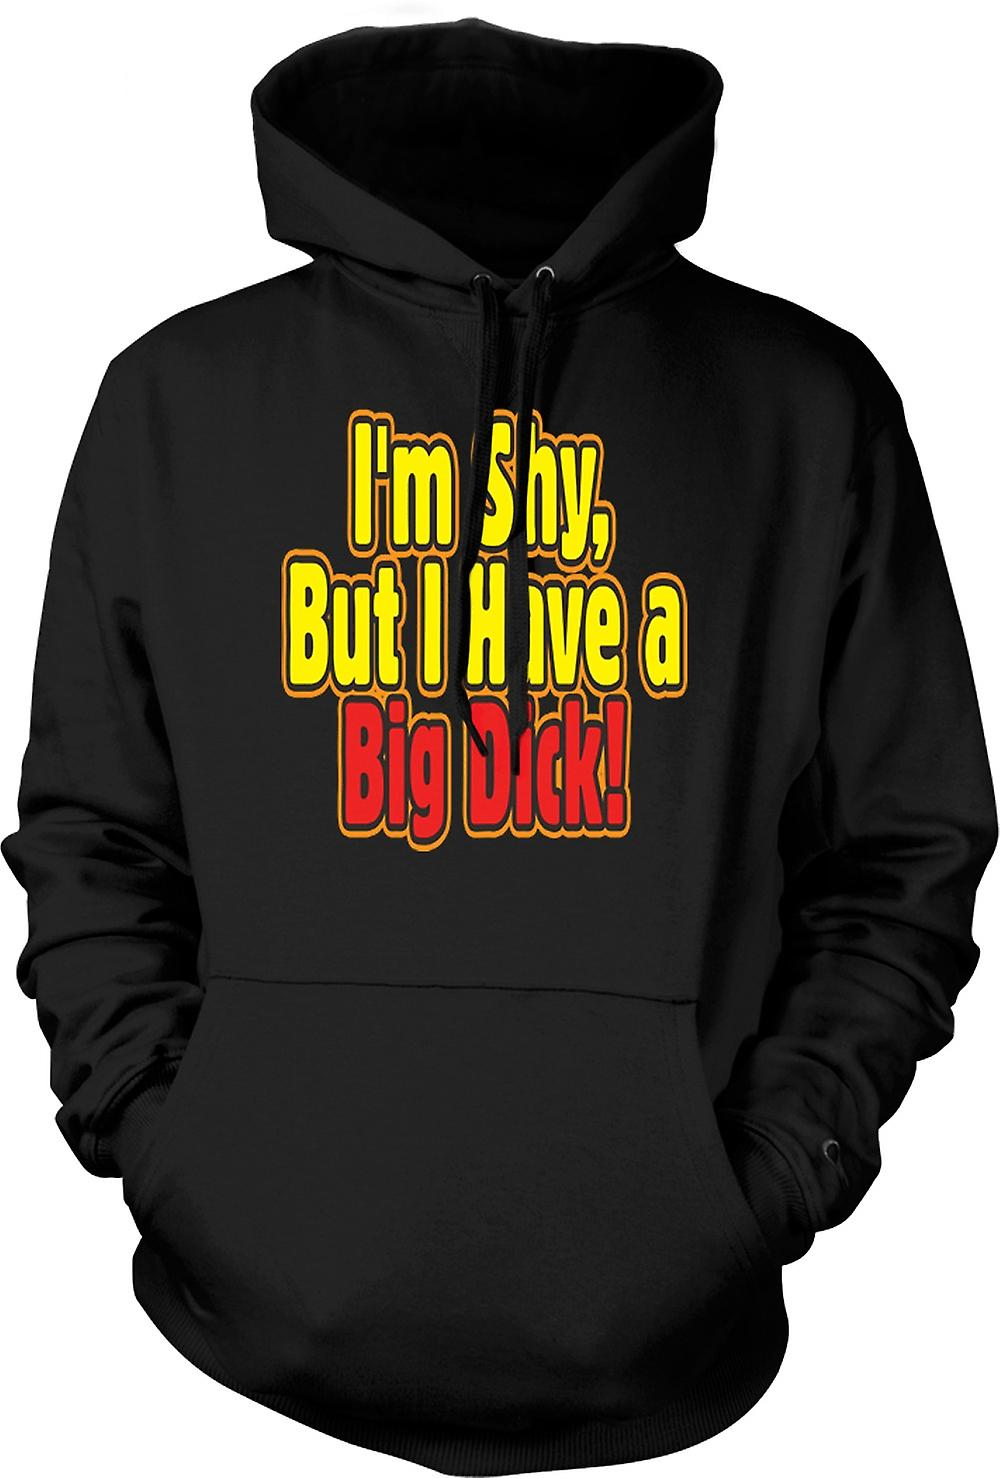 Mens Hoodie - I'm Shy But I Have Big Dick! - Quote